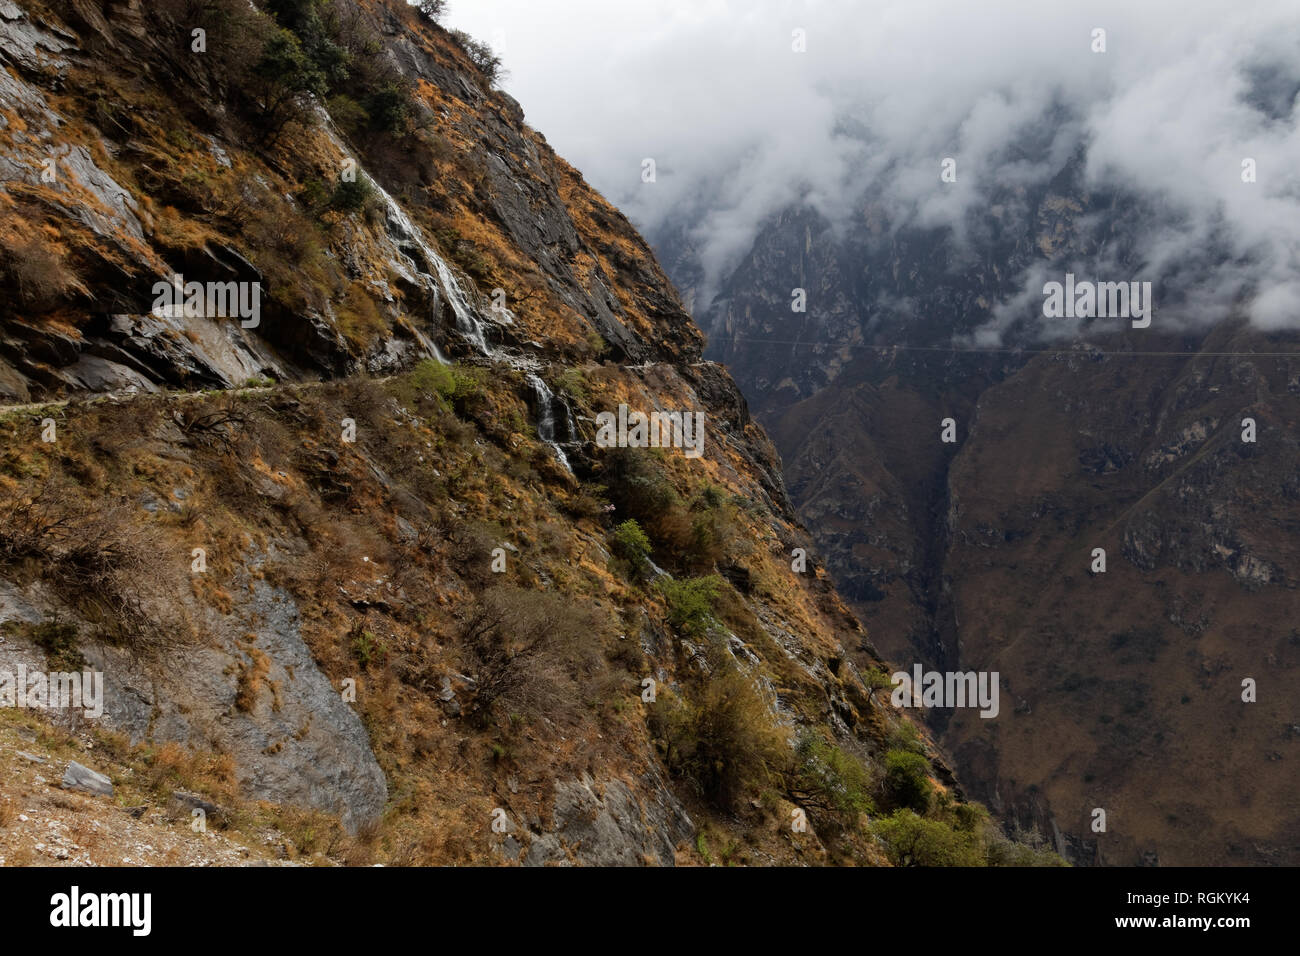 Leaping Tiger Gorge - Stock Image